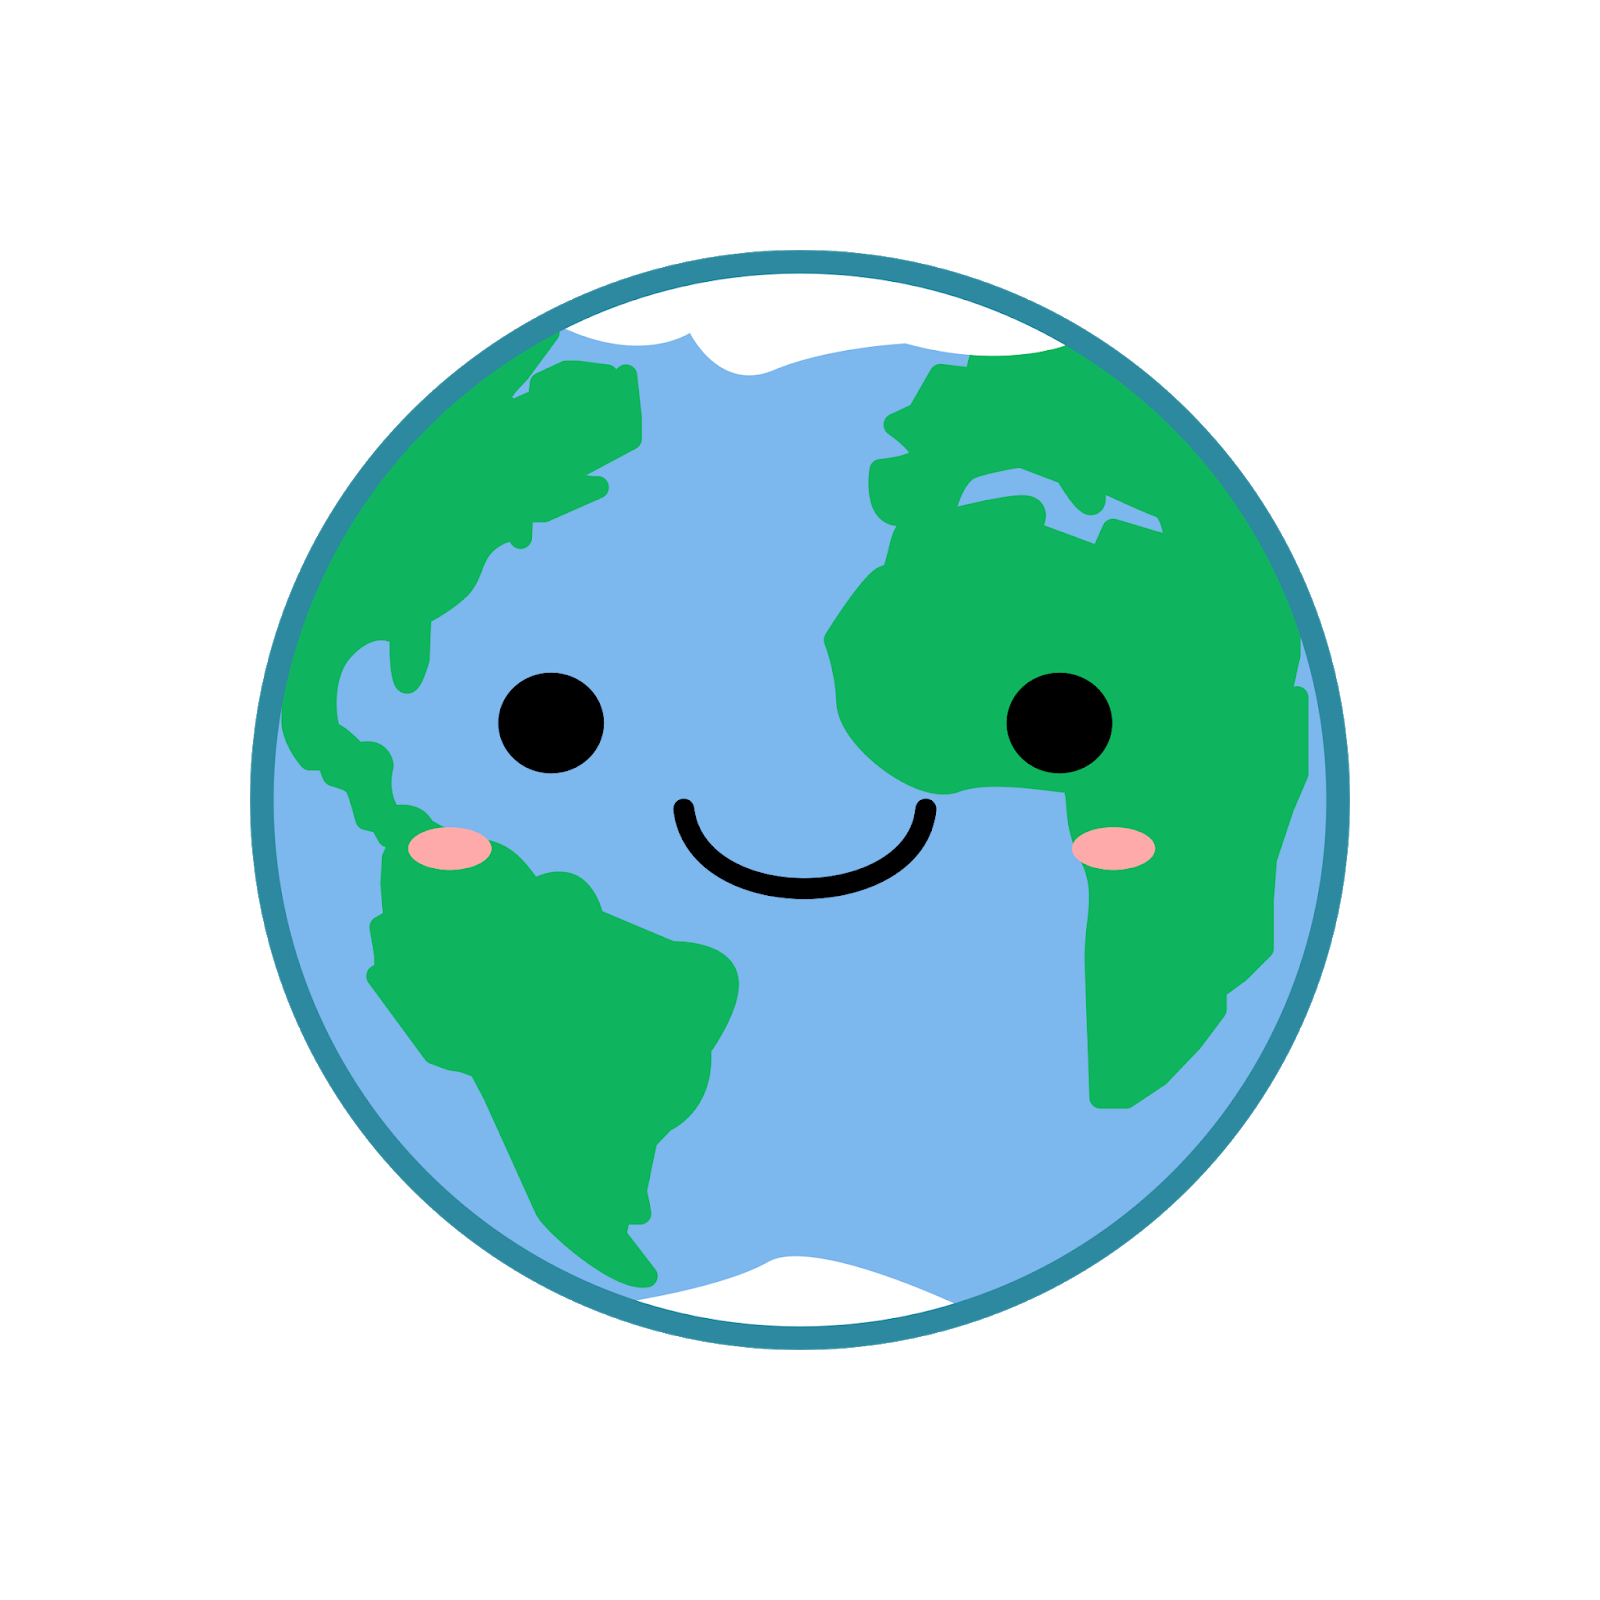 Earth heart clipart picture freeuse stock Free Earth Day Clipart at GetDrawings.com | Free for personal use ... picture freeuse stock